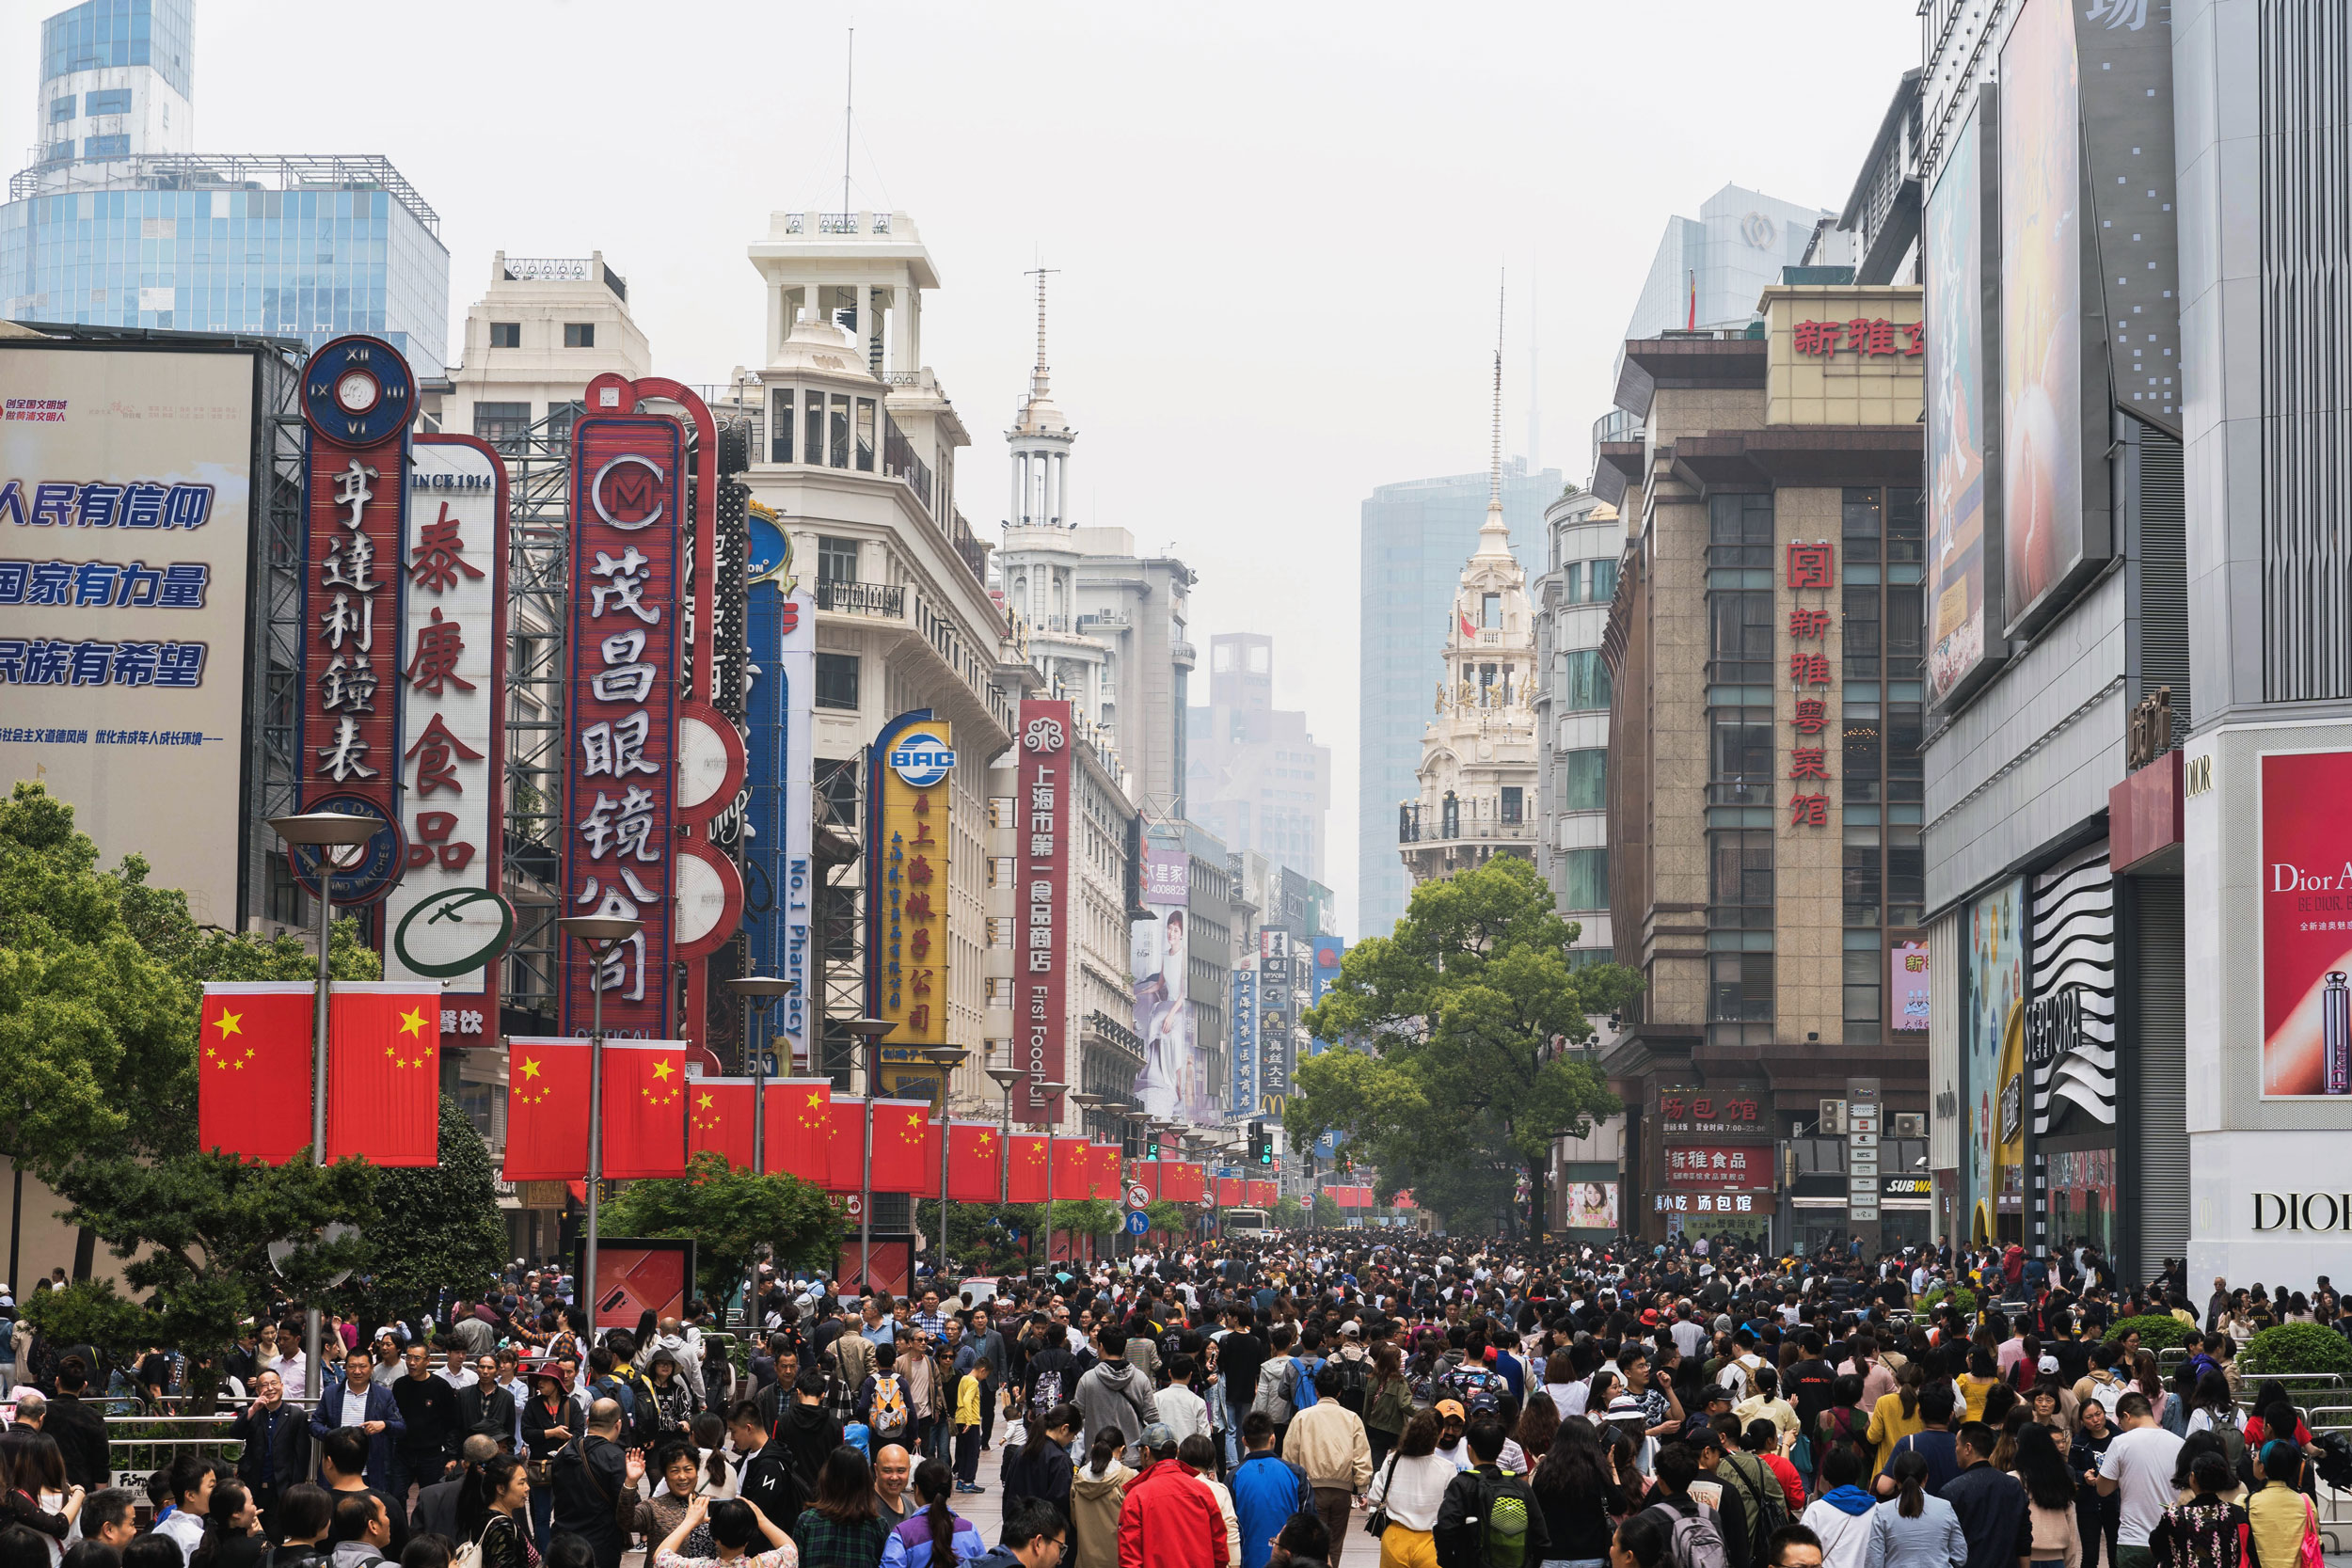 Nanjing Road Pedestrian Street on a crowded holiday